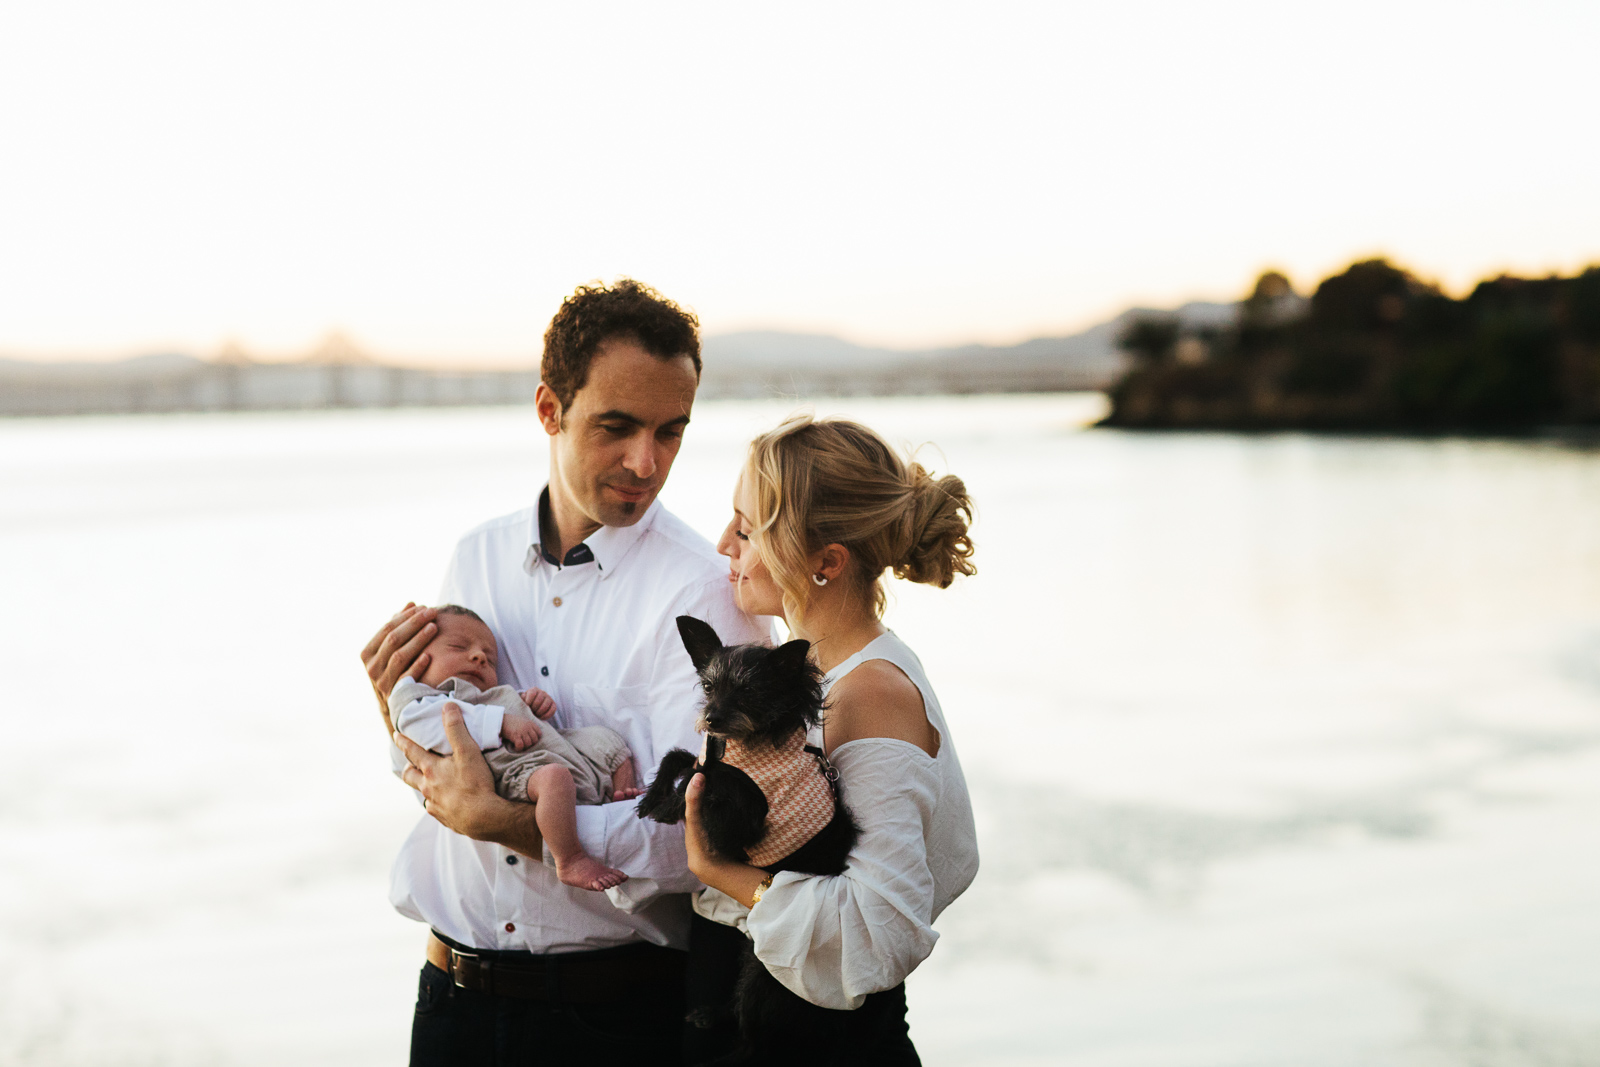 Travel photo of a couple holding a newborn and a dog in Point Richmond, California